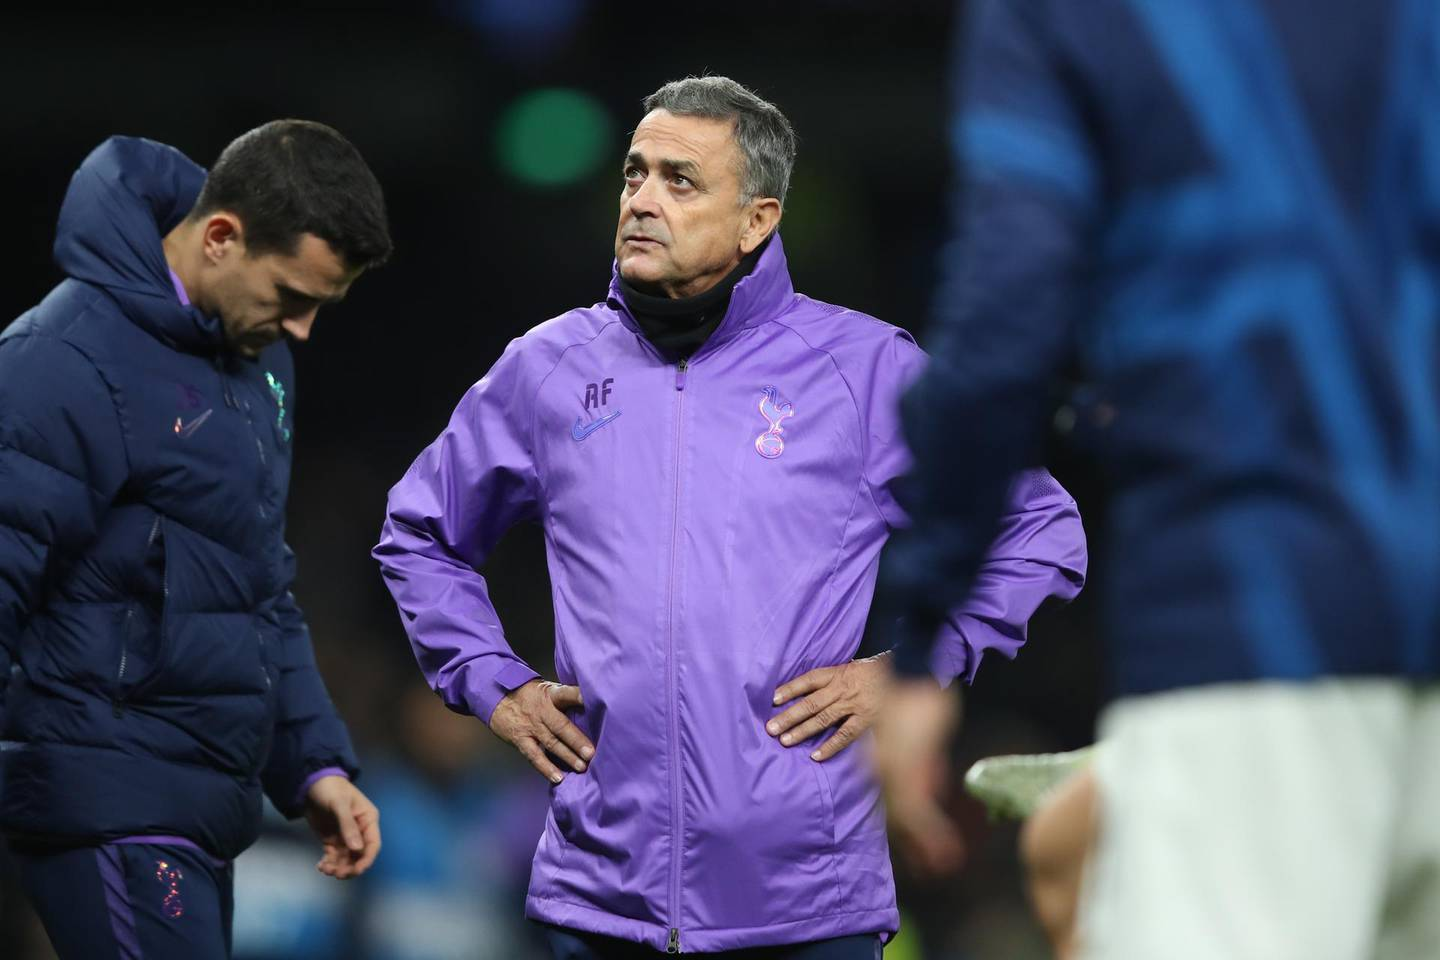 LONDON, ENGLAND - NOVEMBER 26: Tottenham Hotspur's assistant coach Ricardo Formosinho during the UEFA Champions League group B match between Tottenham Hotspur and Olympiacos FC at Tottenham Hotspur Stadium on November 26, 2019 in London, United Kingdom. (Photo by Marc Atkins/Getty Images)